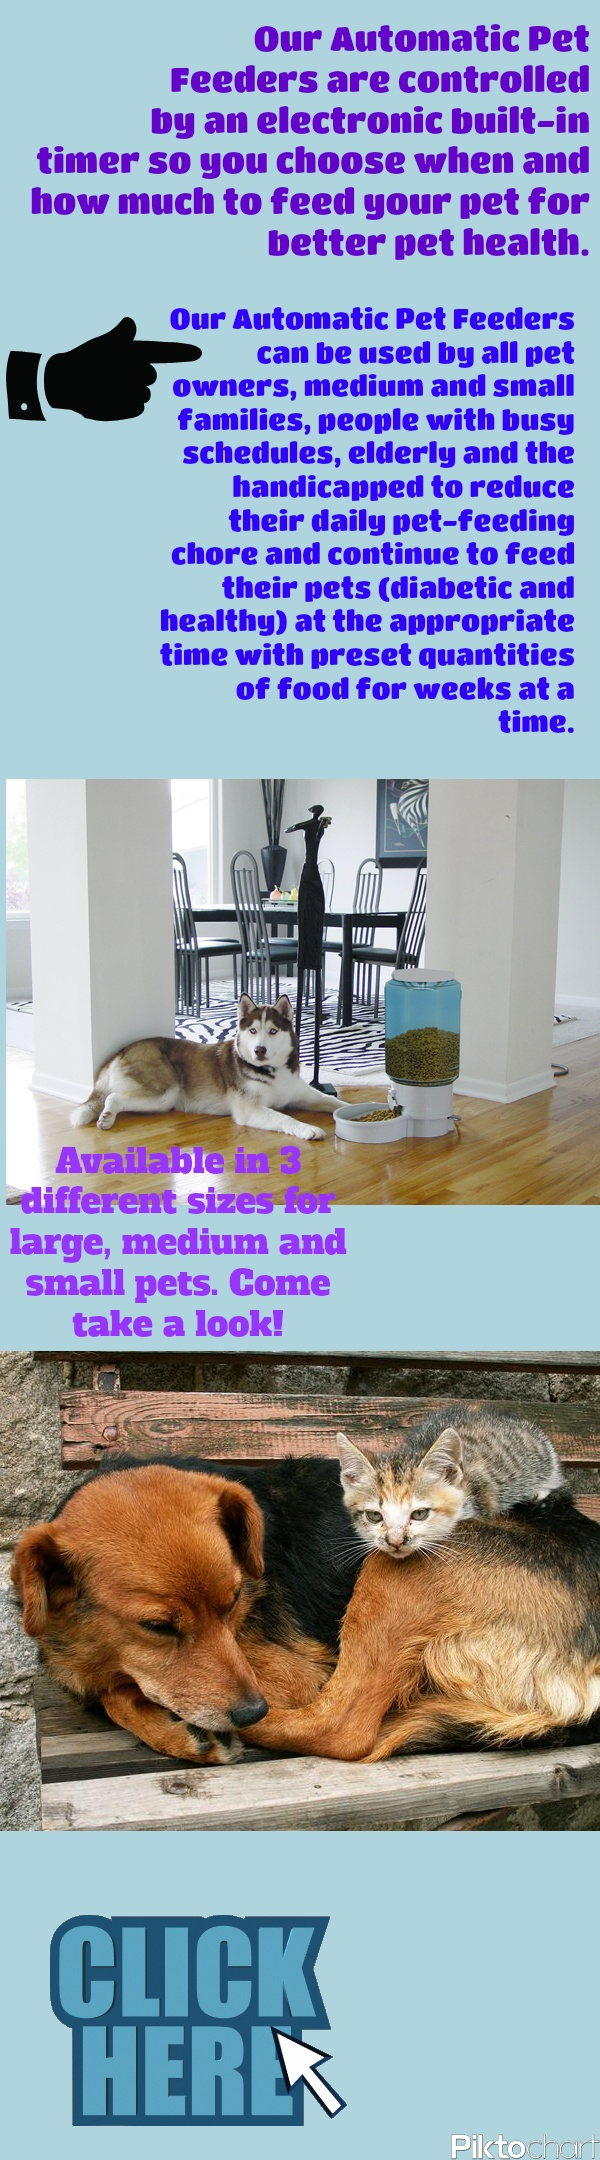 Please visit our # pet feeder website by clicking this link or on the graphic above:  http://acornpetco.com/Automatic-Pet-Feeders  to learn more about this system. $69.99 with free shipping and no sales tax.